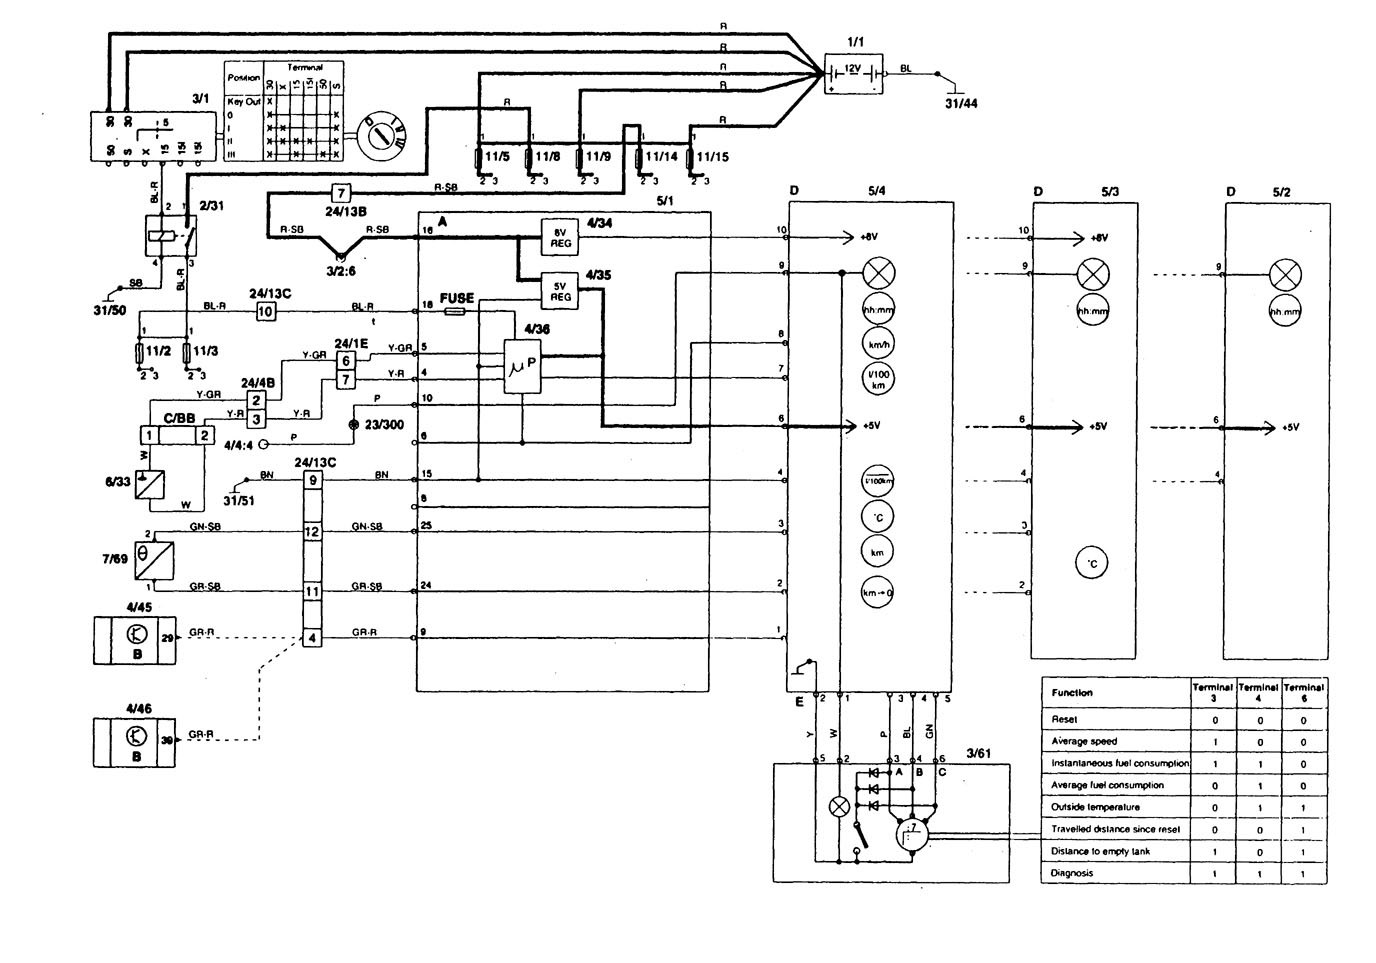 Diagram Volvo 850 Wiring Diagram 1997 Full Version Hd Quality Diagram 1997 Iphoneimeiscam Terrassement De Vita Fr